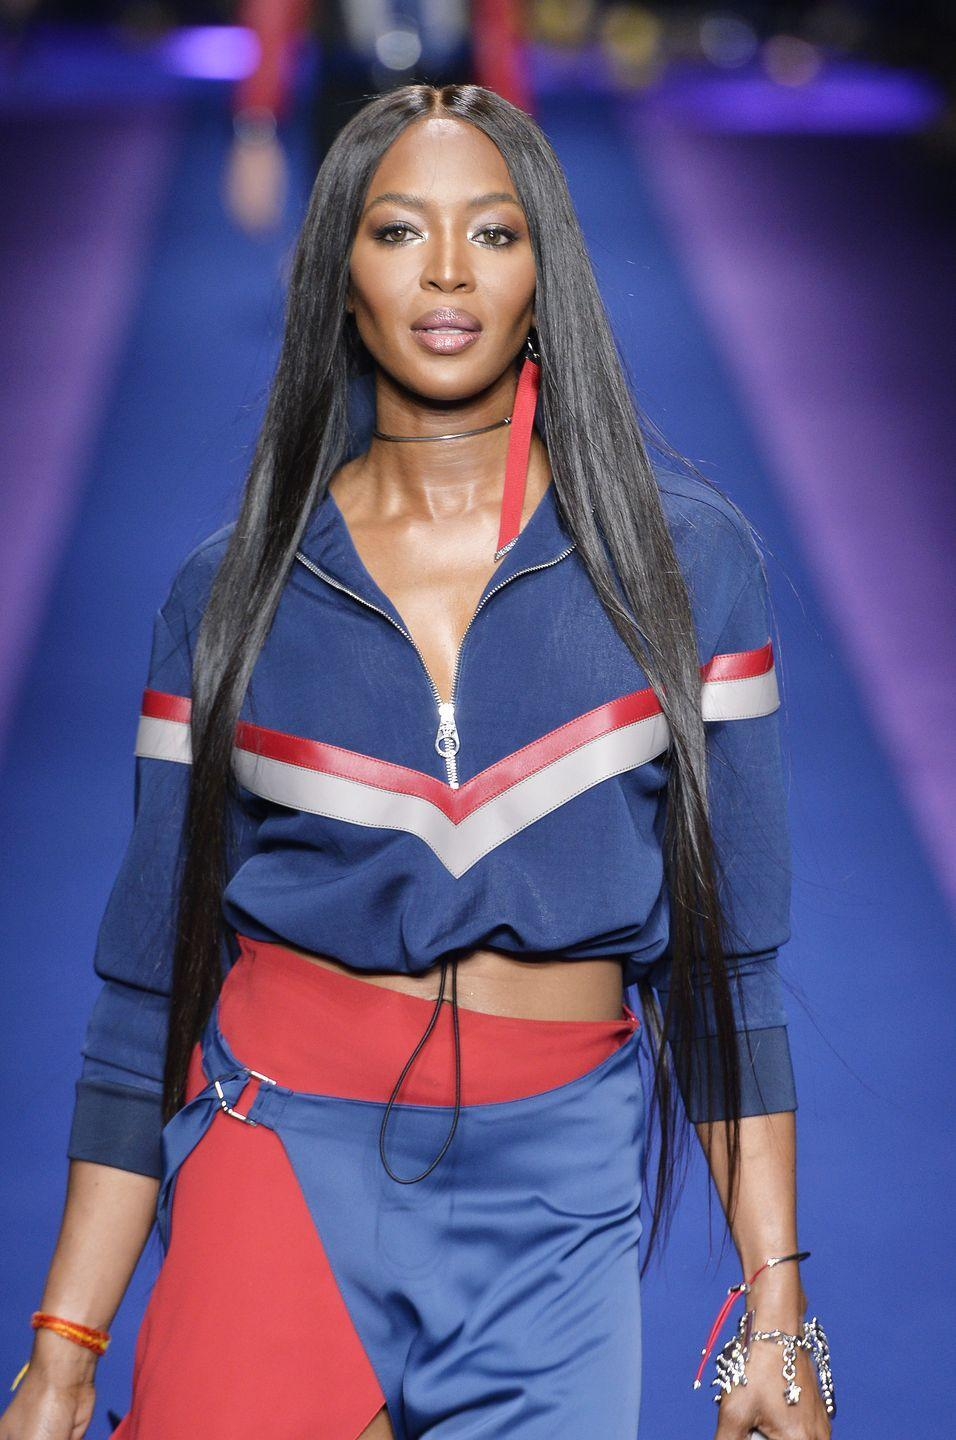 "<p>The iconic supermodel was only 15 when she was spotted by Pennington Models scout Beth Boldt.</p><p>""A woman came up to me and asked if I'd ever thought of modelling. It was Beth Boldt, head of the Synchro agency. My immediate reaction was surprise and excitement,"" Campbell told <em><a href=""https://www.theguardian.com/fashion/2016/mar/19/naomi-campbell-modelling-bob-marley-putin-autobiography-extract"" rel=""nofollow noopener"" target=""_blank"" data-ylk=""slk:The Guardian."" class=""link rapid-noclick-resp"">The Guardian.</a></em> ""My mum wanted me to stay on at school and finish my exams. But I wanted things my way, so a few weeks later I went to see Beth on my own. On my first visit, she parted my hair in the middle, did my makeup and took me up on the roof in my school uniform to take a few black-and-white pictures. Eventually, Mum decided I could model, so long as it didn't interfere with my school work or exams."" </p><p>In January 1990, Campbell was declared ""the reigning megamodel of them all"" by <em><a href=""https://people.com/archive/a-night-with-the-cover-girls-vol-33-no-23/"" rel=""nofollow noopener"" target=""_blank"" data-ylk=""slk:Interview"" class=""link rapid-noclick-resp"">Interview</a></em>. Most famously, she was also part of The Big Five supermodels of the '90s—going on to become a runway icon and the face of endless major fashion campaigns.<br></p>"